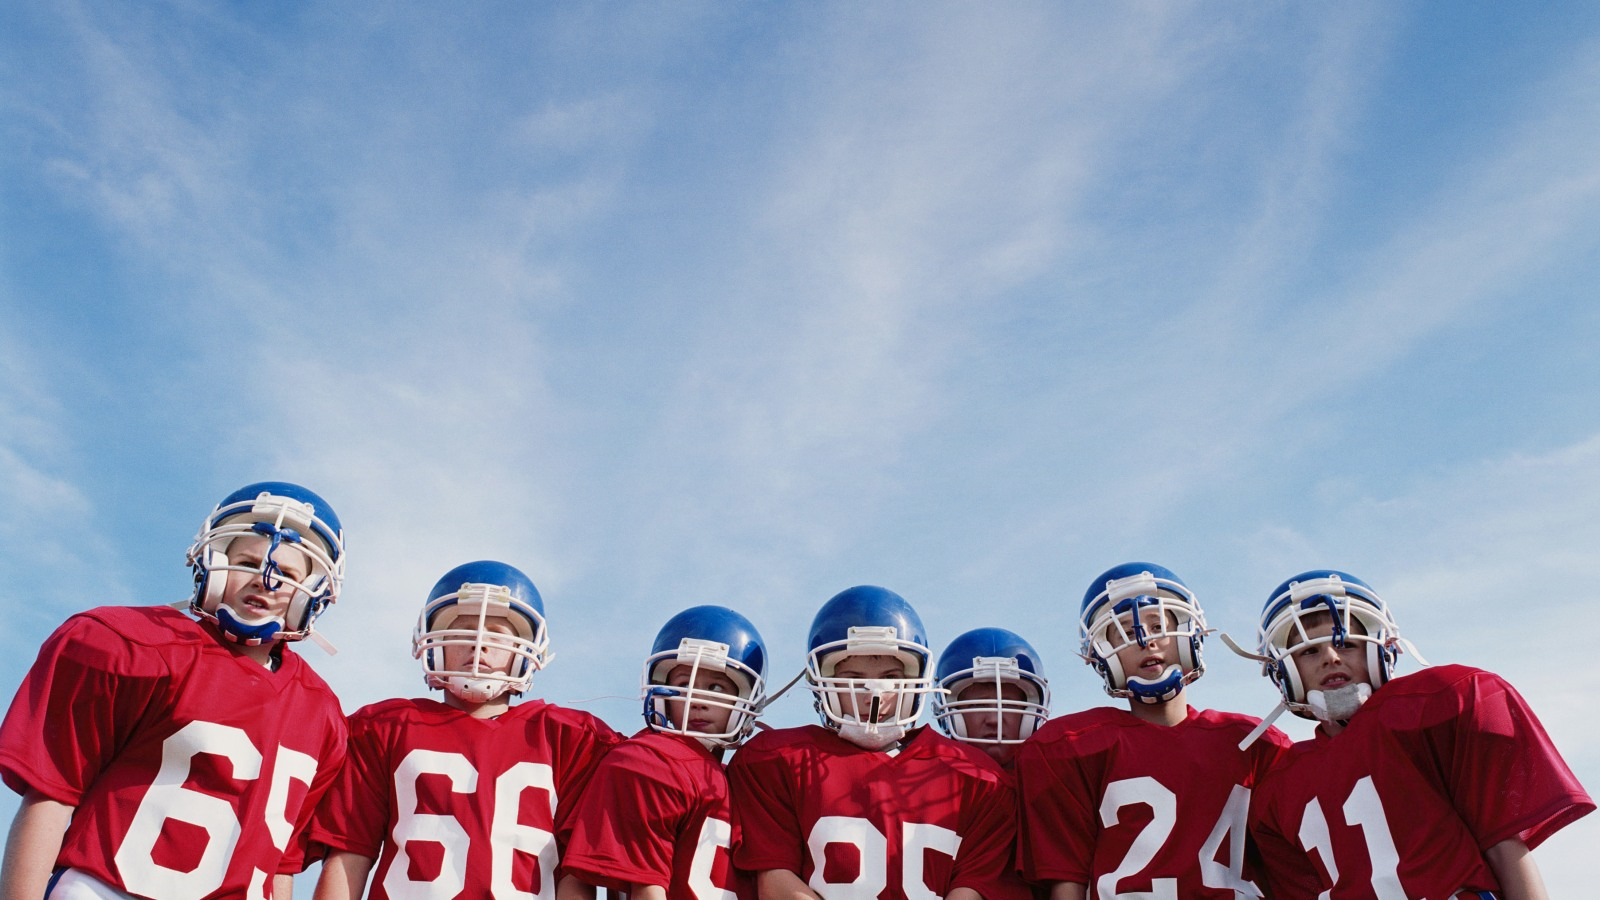 eac512b80 Should You Let Your Kid Play Football? Here's The Truth About Concussions.